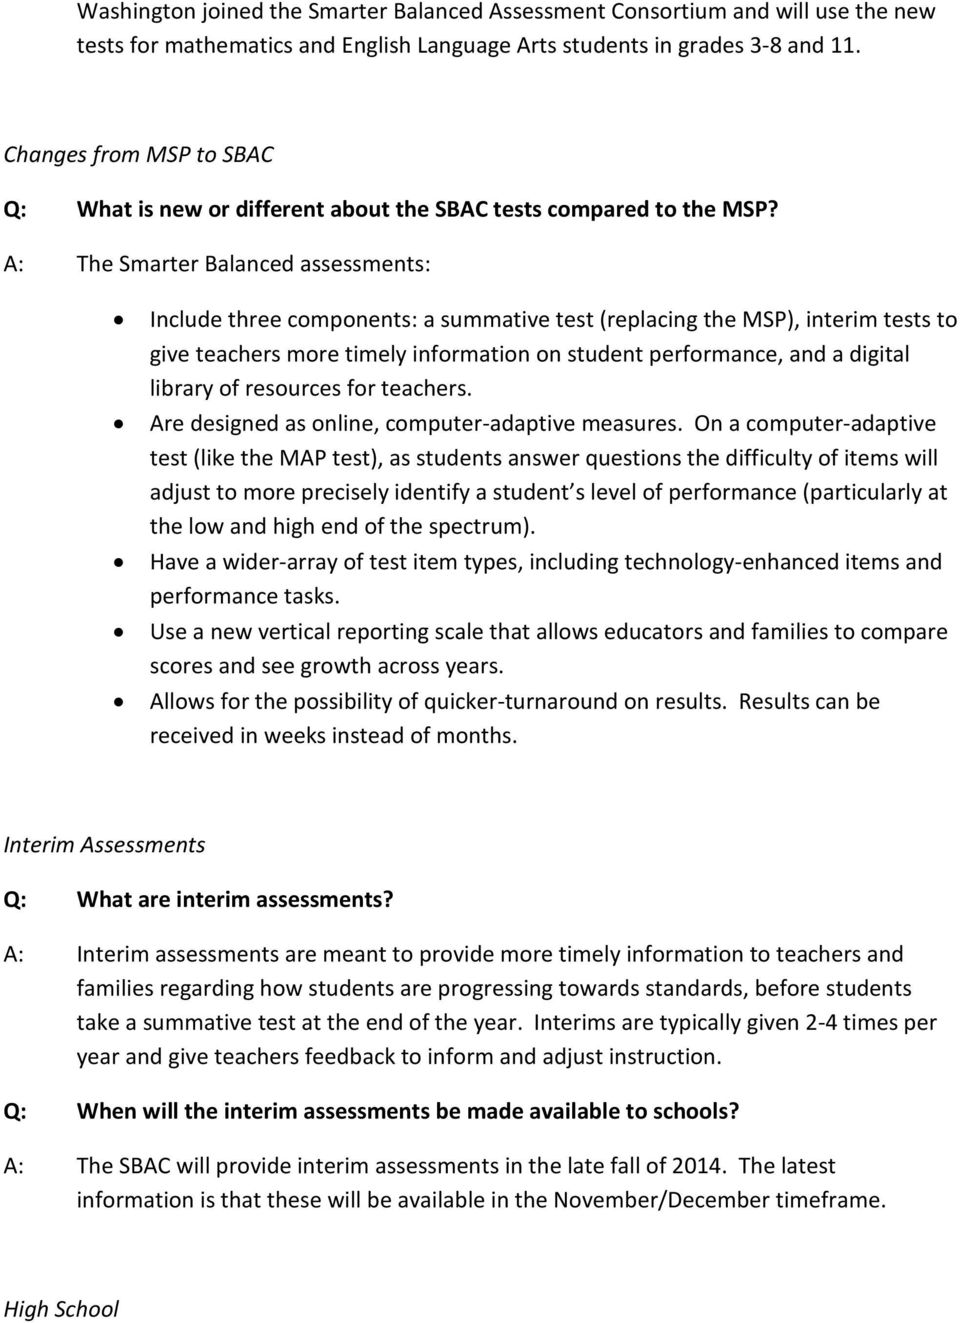 A: The Smarter Balanced assessments: Include three components: a summative test (replacing the MSP), interim tests to give teachers more timely information on student performance, and a digital